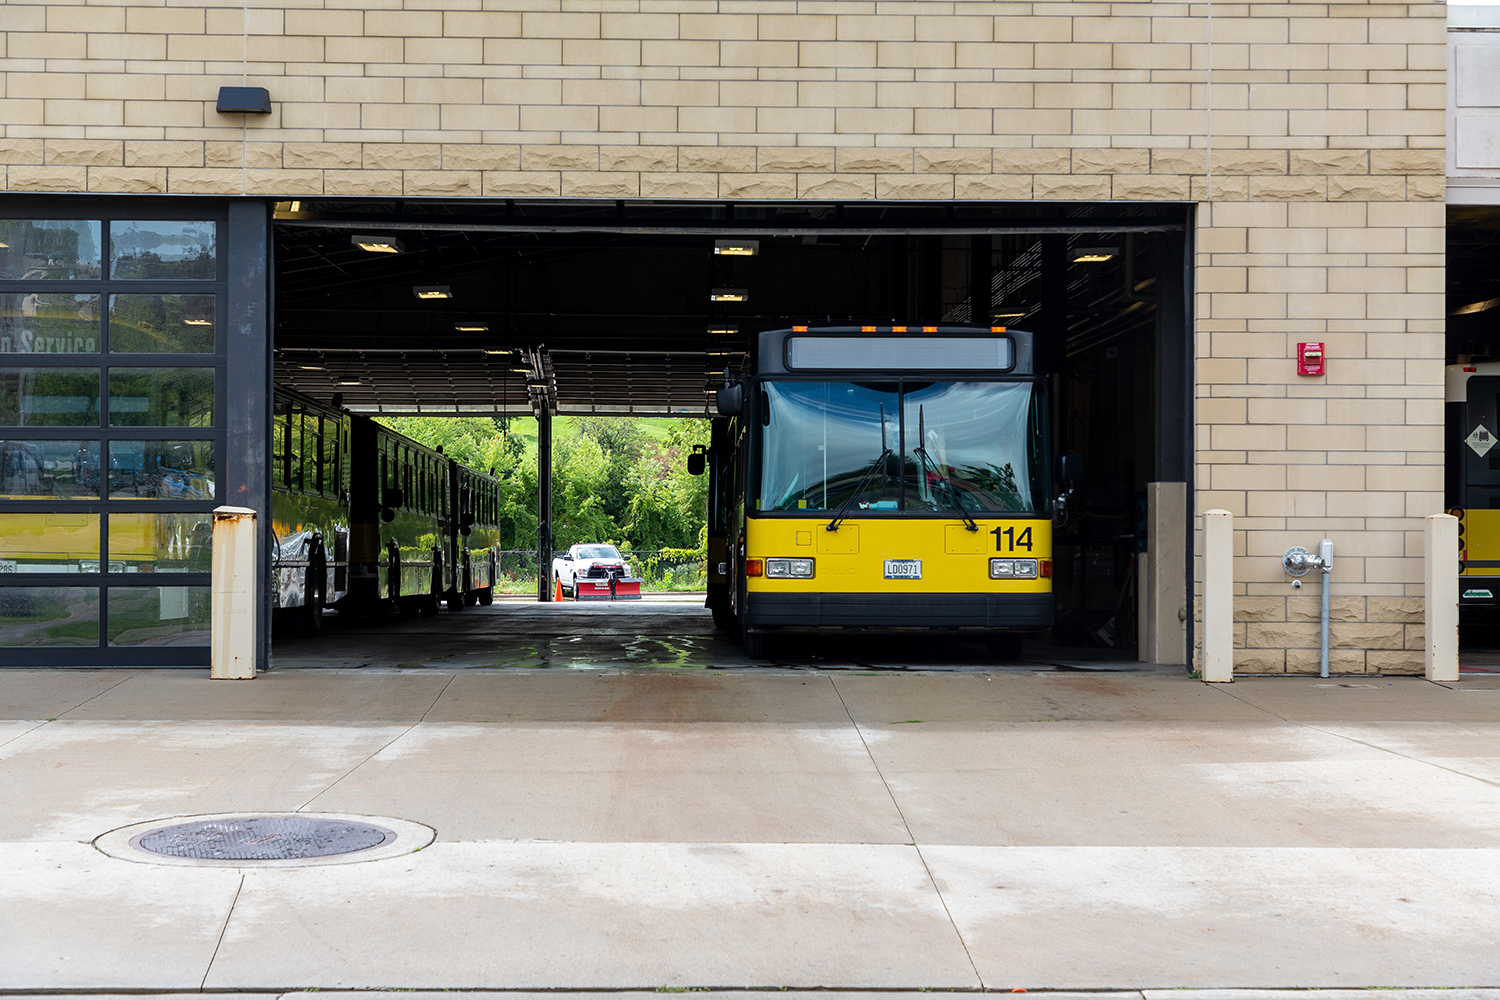 University of Iowa Cambuses at the Madison St. Maintenance Facility on Monday, Aug. 20, 2018. Cambus recently announced a limitation of service to Mayflower Hall due to ongoing road construction.